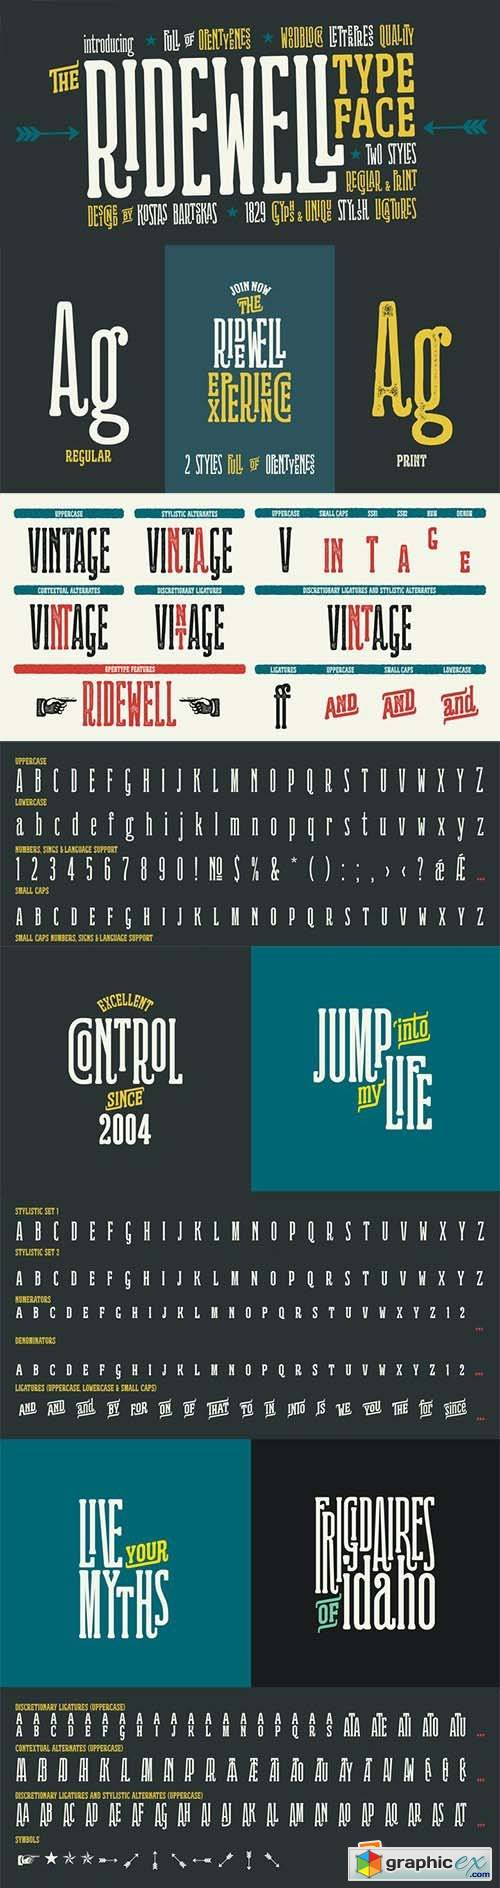 Ridewell Font Family - 2 Fonts 75$